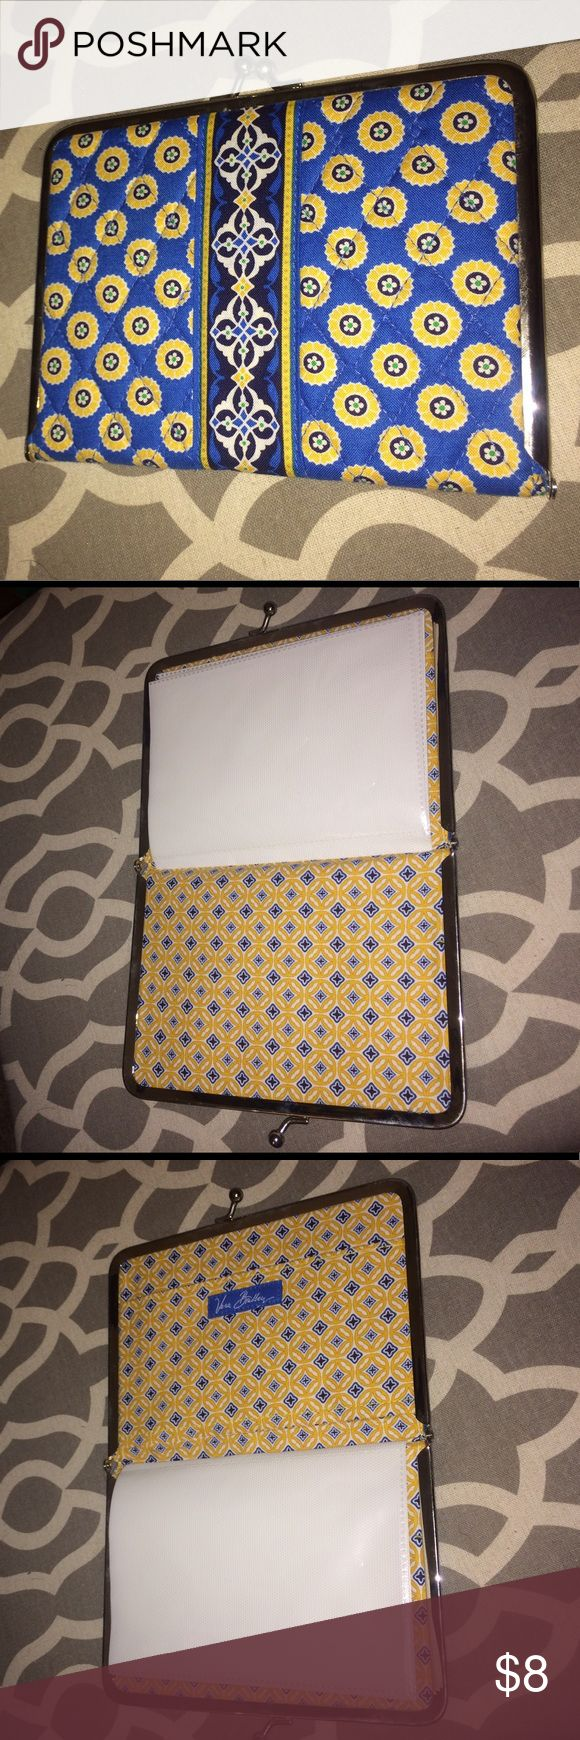 Vera Bradley Riviera Blue photo album Excellent condition Riviera Blue Vera Bradley photo album - holds 4x6 photos and has a pocket in the back - clasps shut - great for a small scrapbook or album - or organize coupons on the go! Vera Bradley Accessories